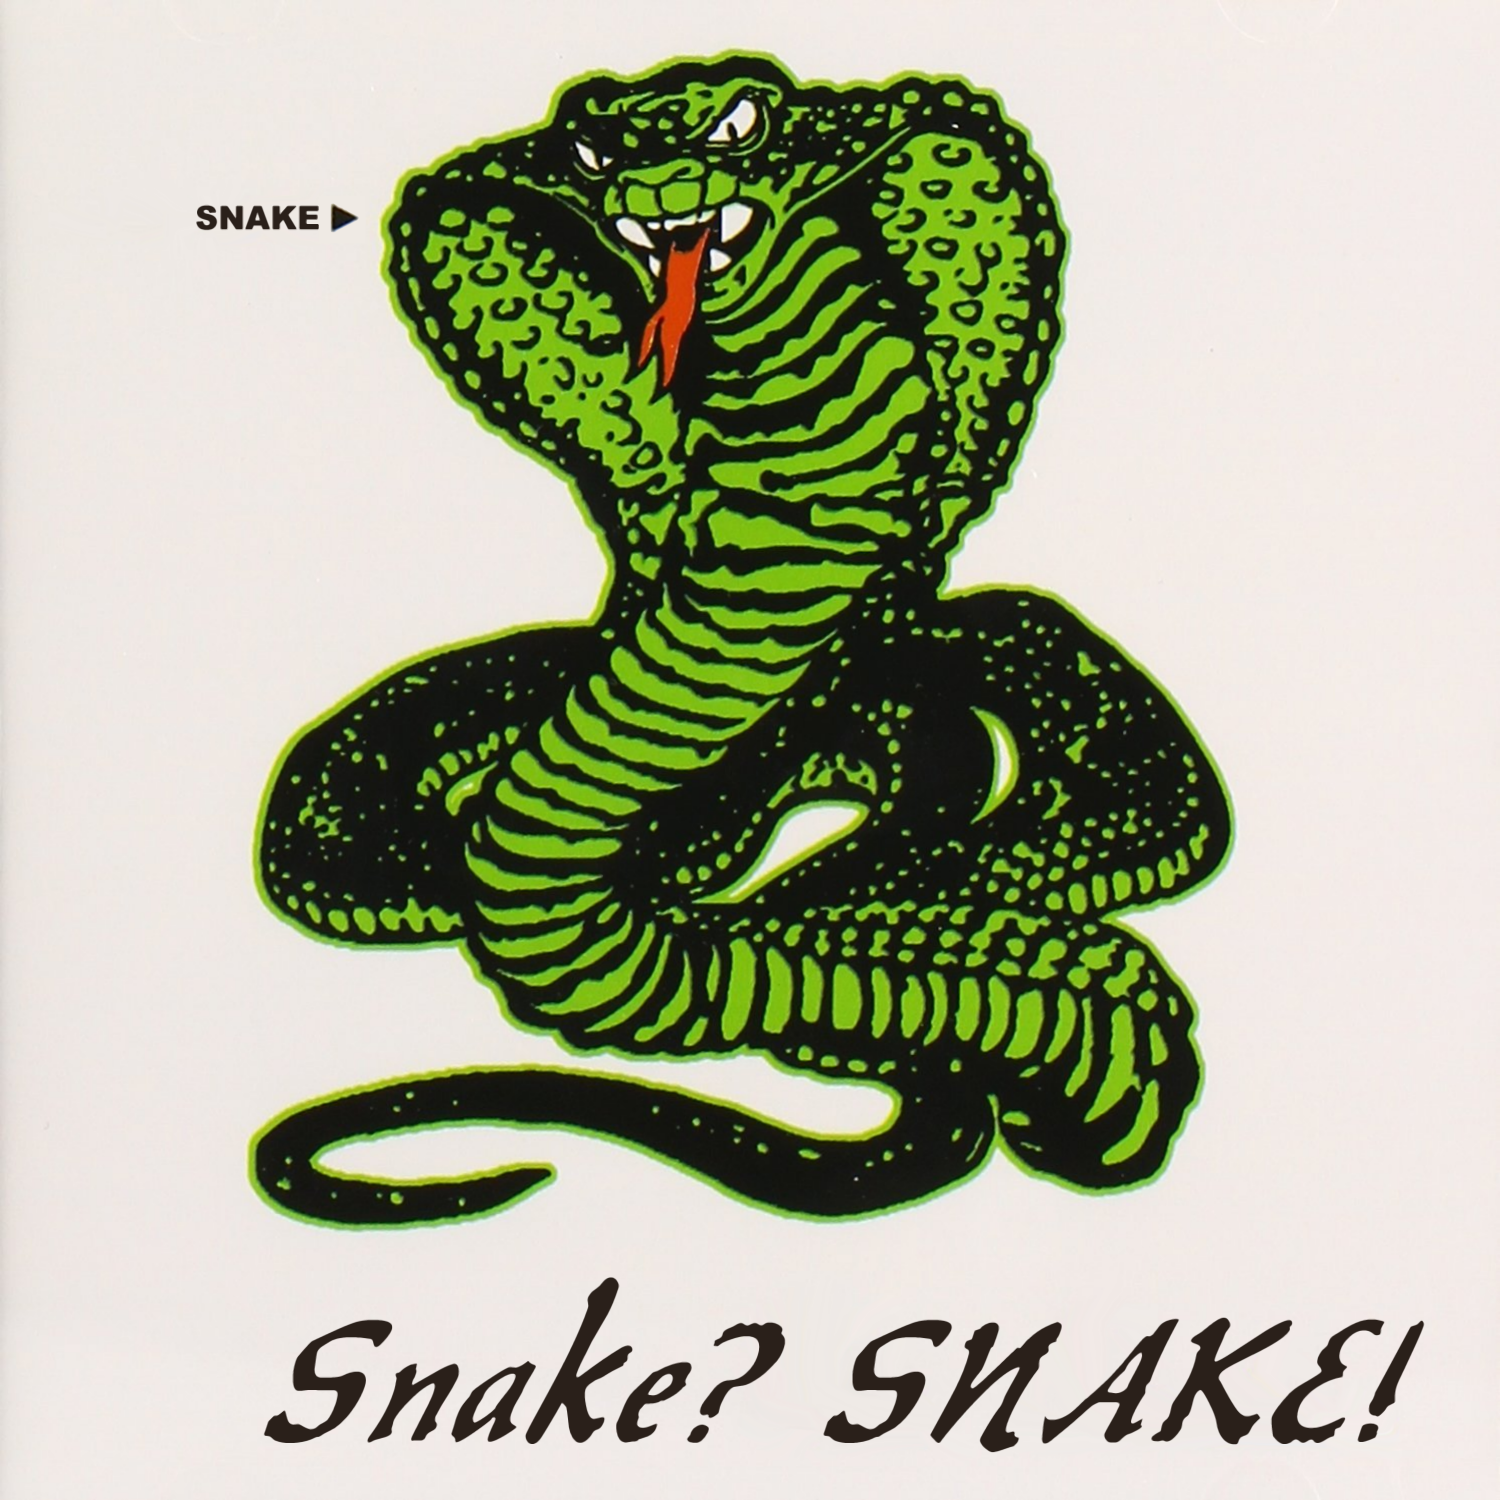 Album cover parody of Snakes by SNAKES